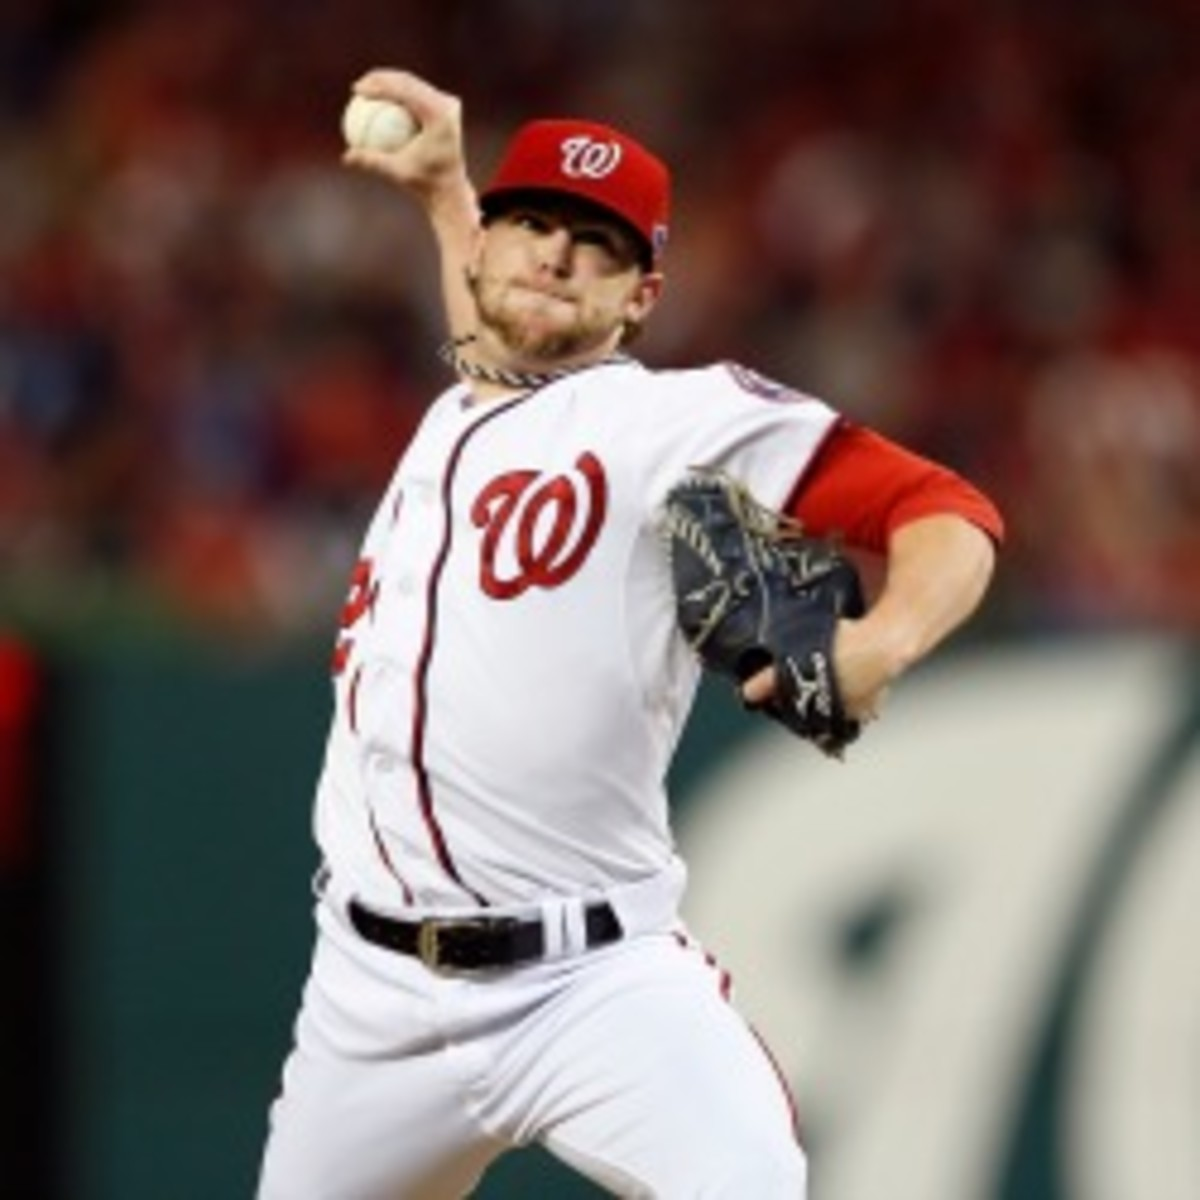 Nationals reliever Drew Storen blew a two-run, ninth-inning lead in the team's season-ending, NLDS Game 5 loss. (Rob Carr/Getty Images)